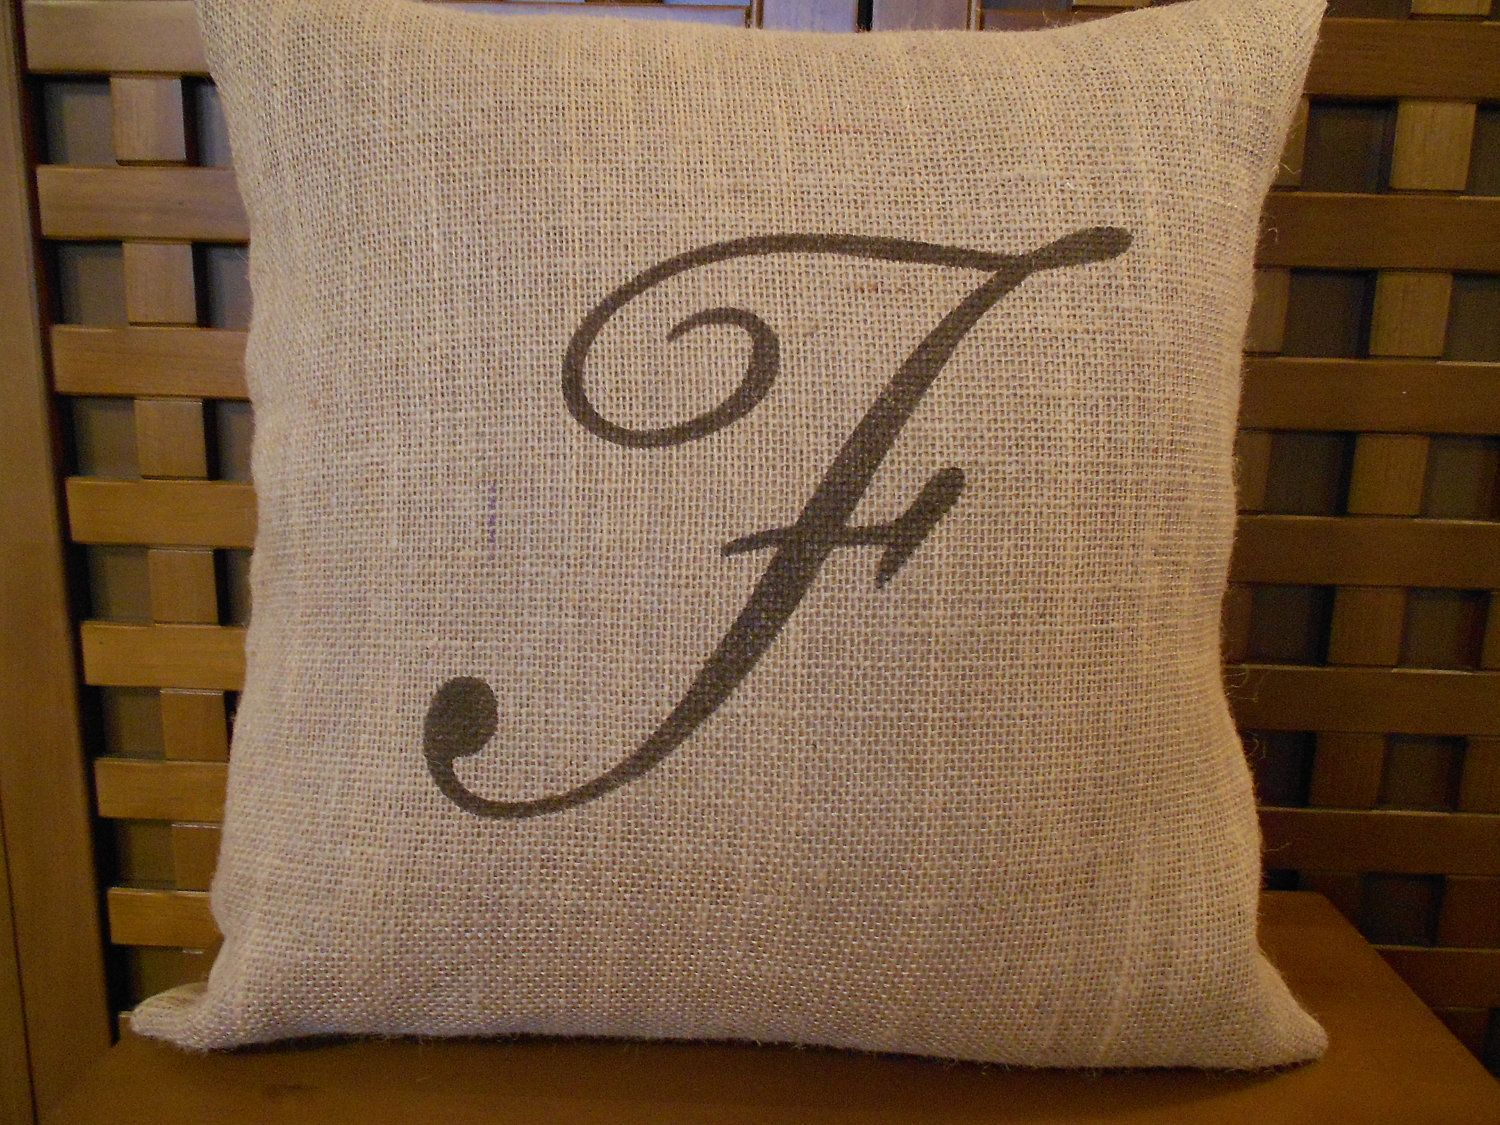 the pillow had re you burlap wishes s square of jute country youre collection picture p house friend